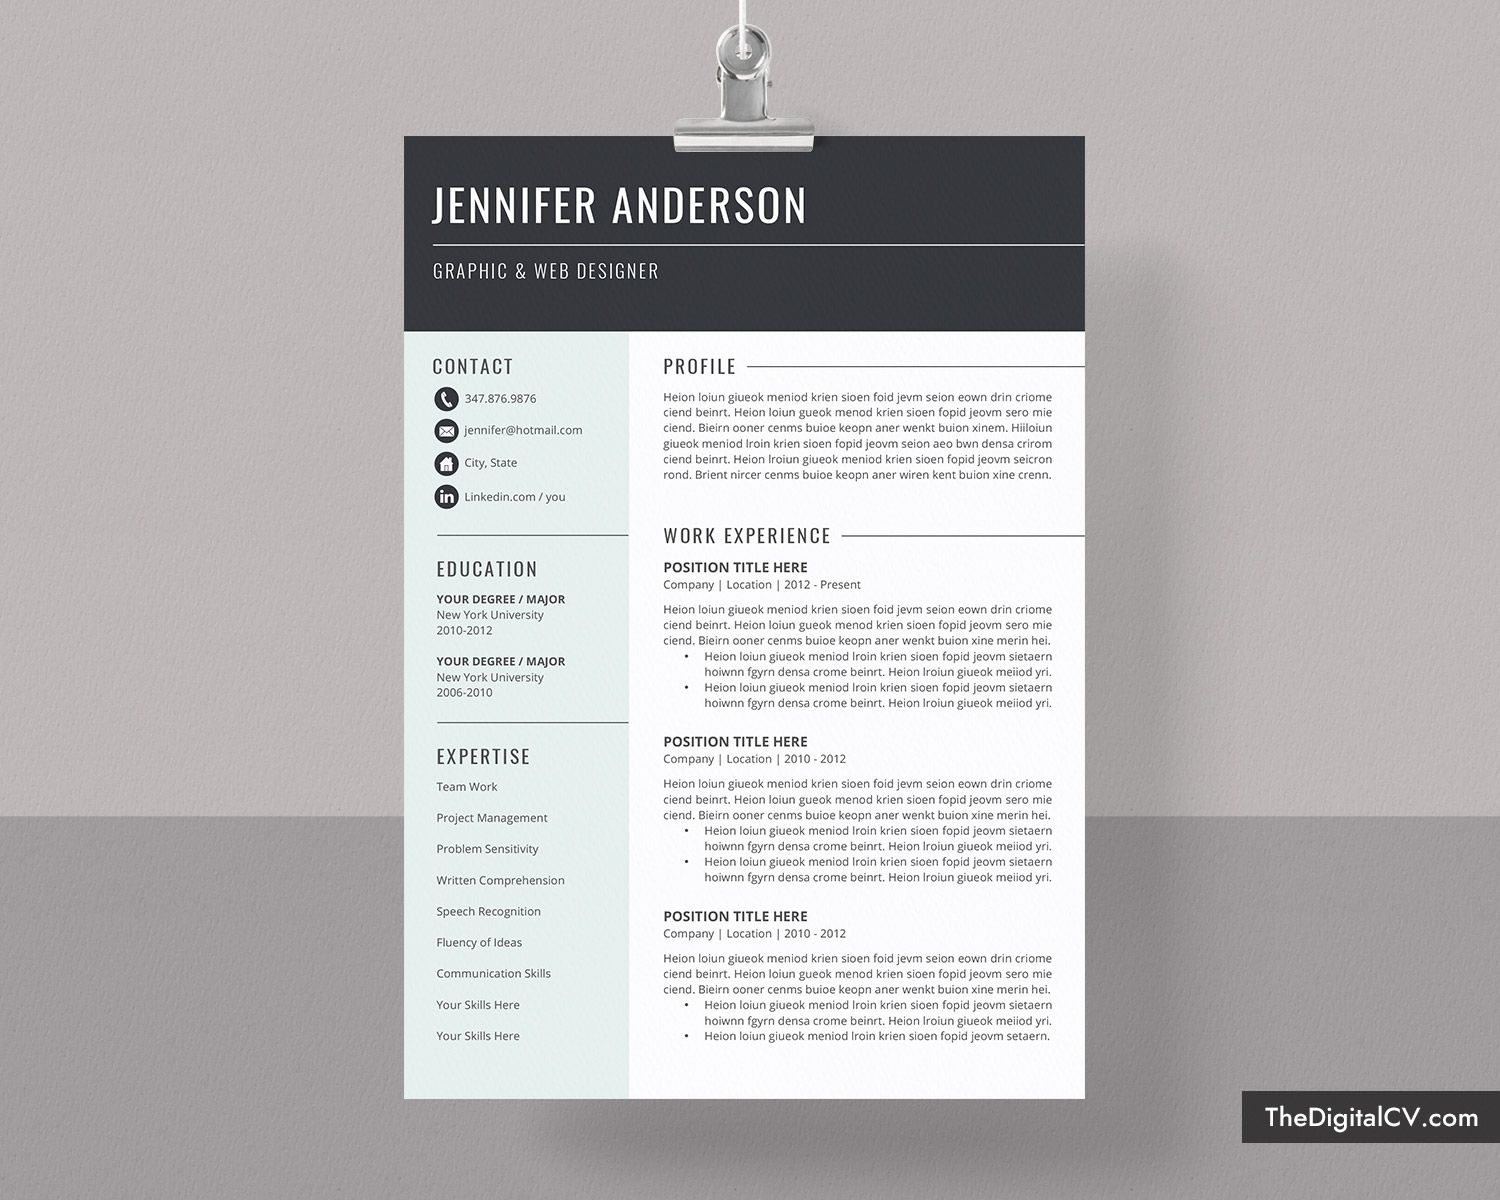 basic and simple resume template cv cover letter microsoft word free professional best Resume Best Resume Templates 2020